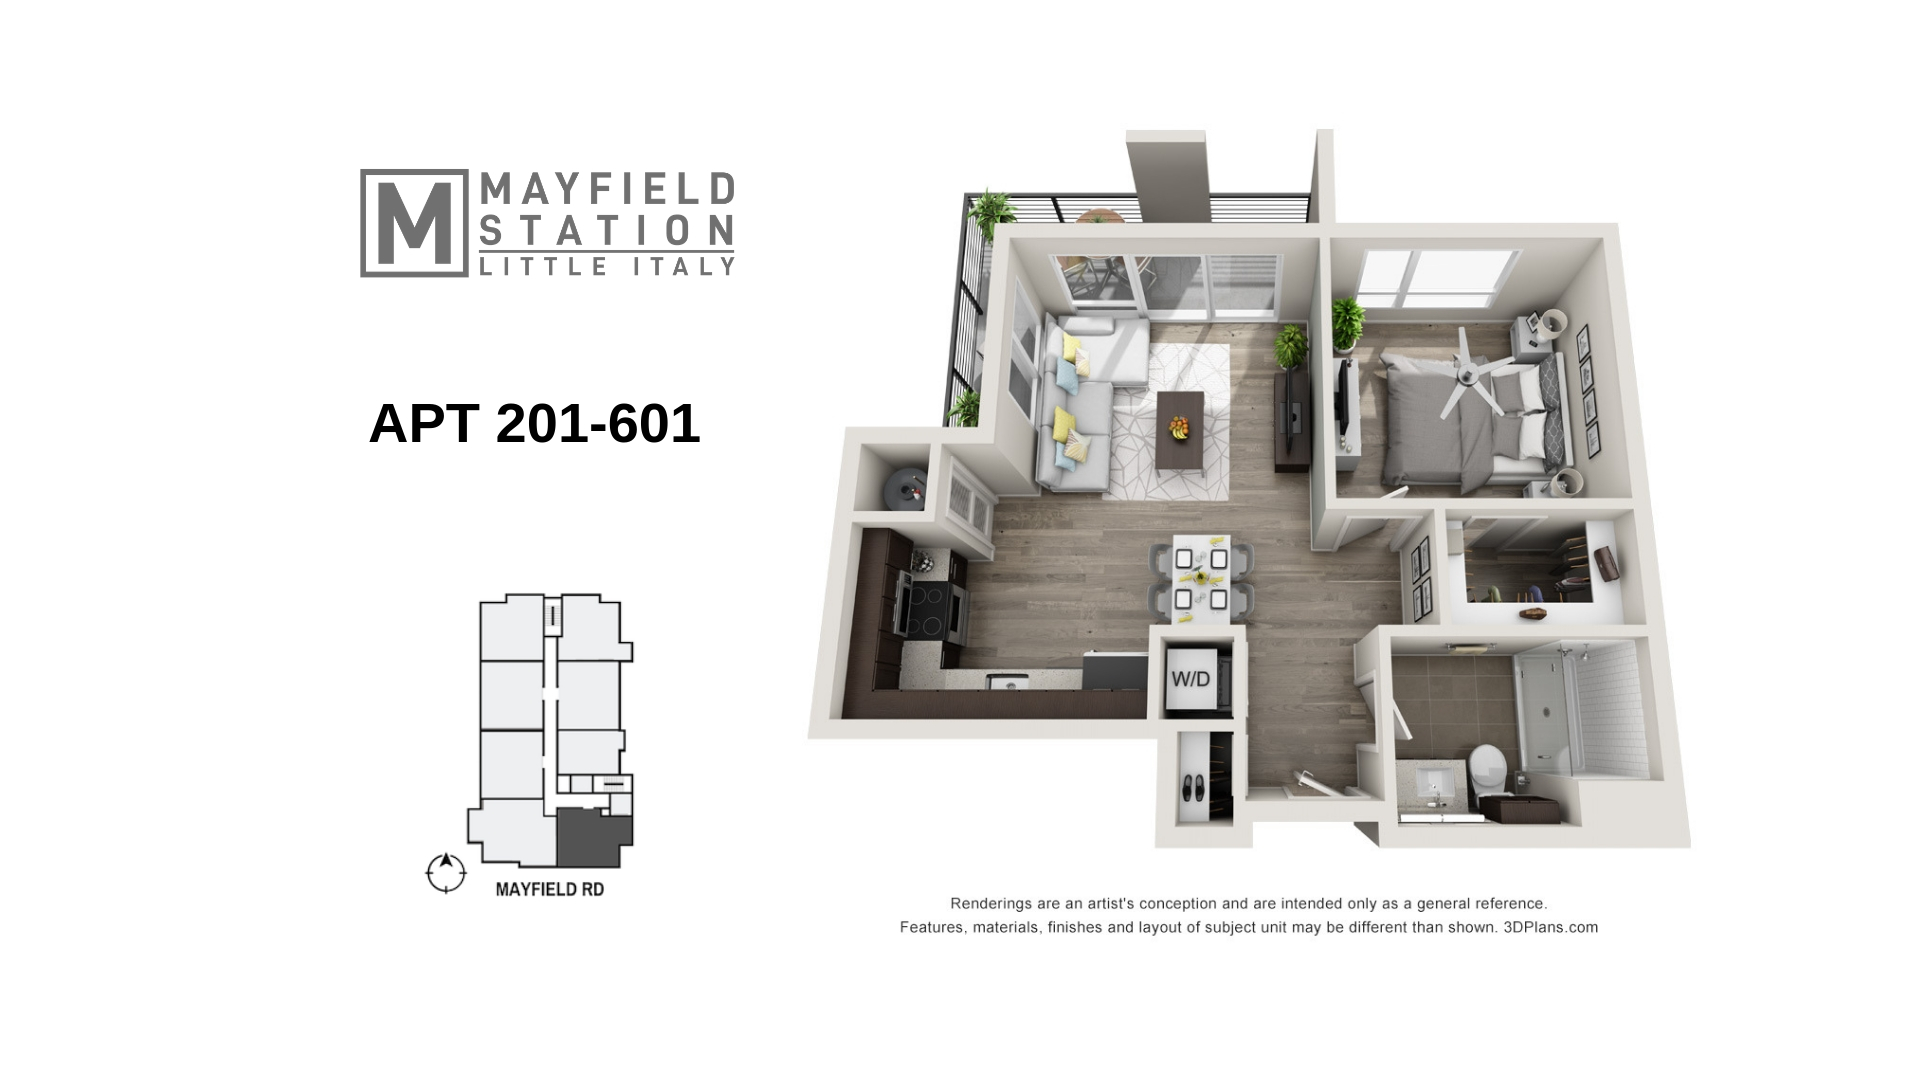 Mayfield Station Apartments - Floorplan - APT 201-601